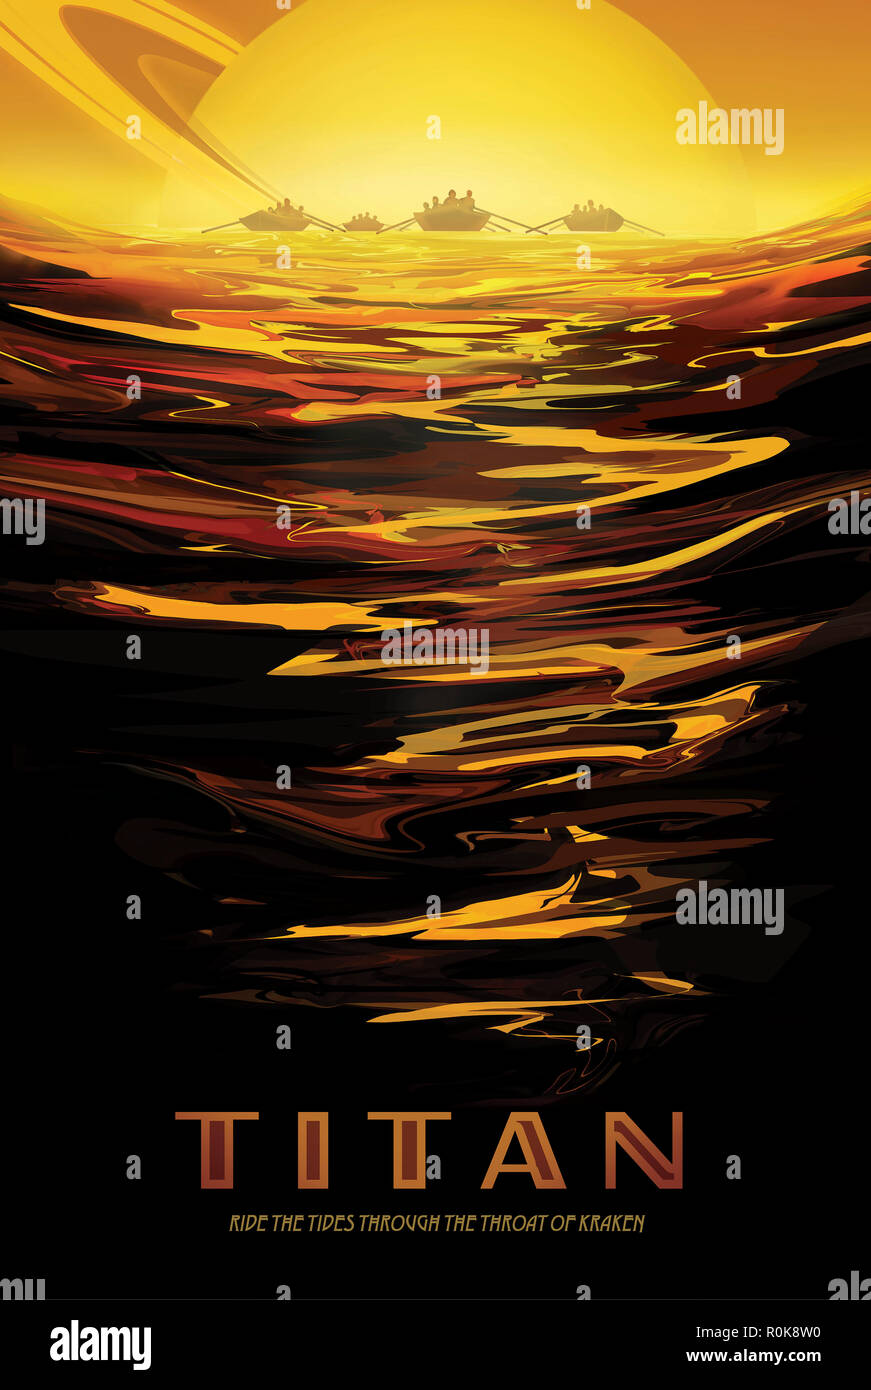 Retro space travel poster of Saturn's largest moon, Titan, and its thick atmosphere. - Stock Image